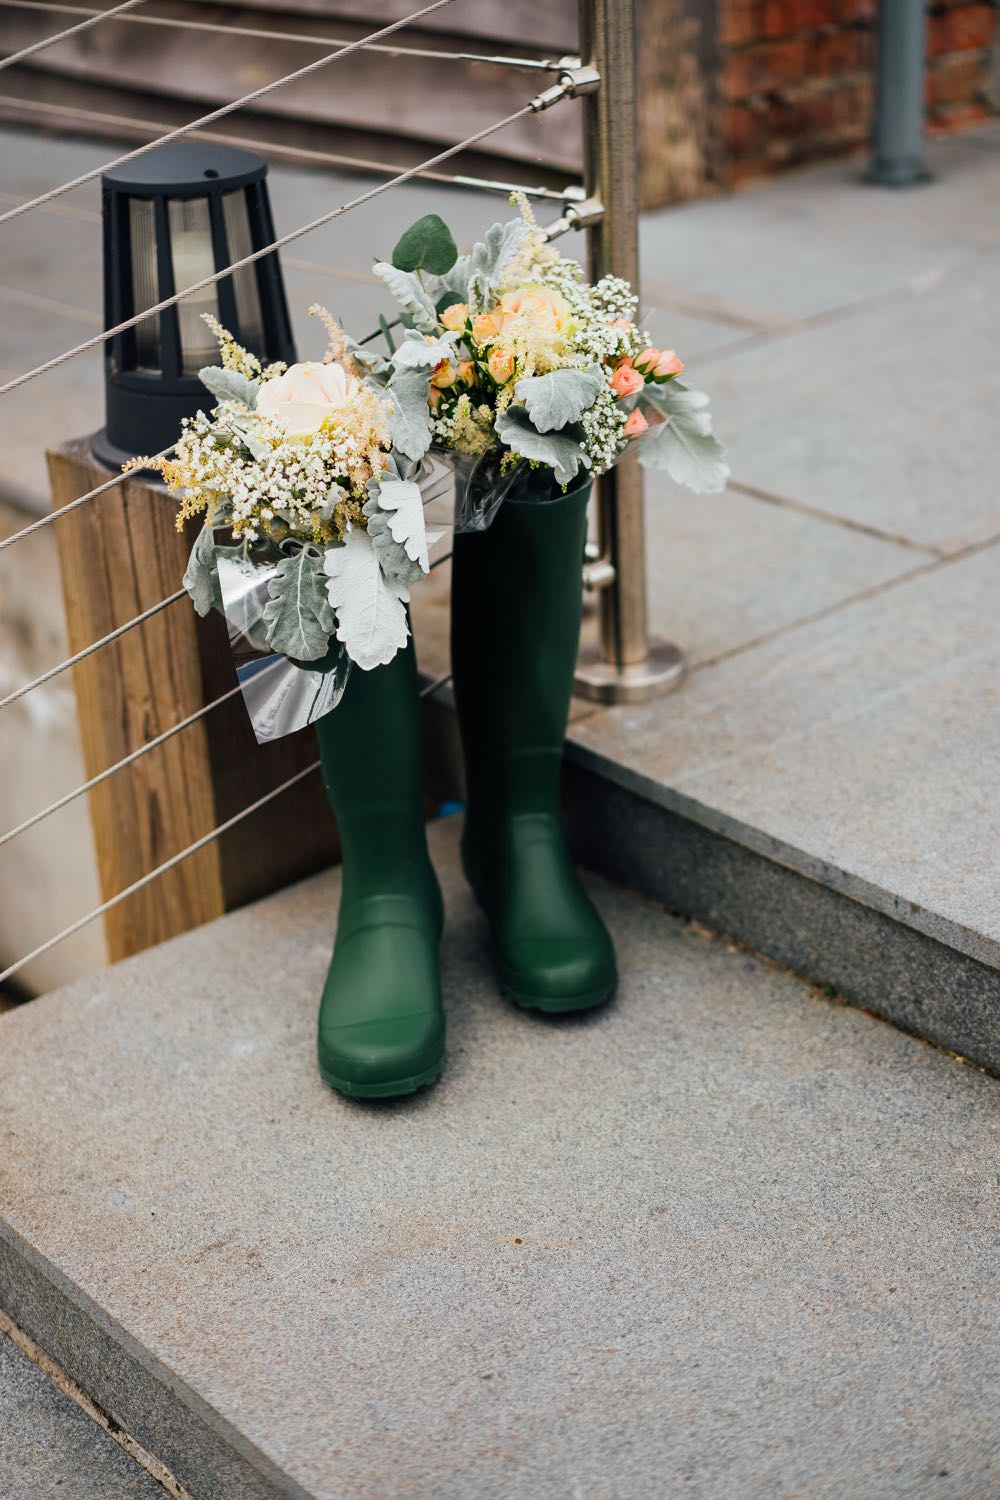 A decor detail shot of some flowers poking  out of a green welly